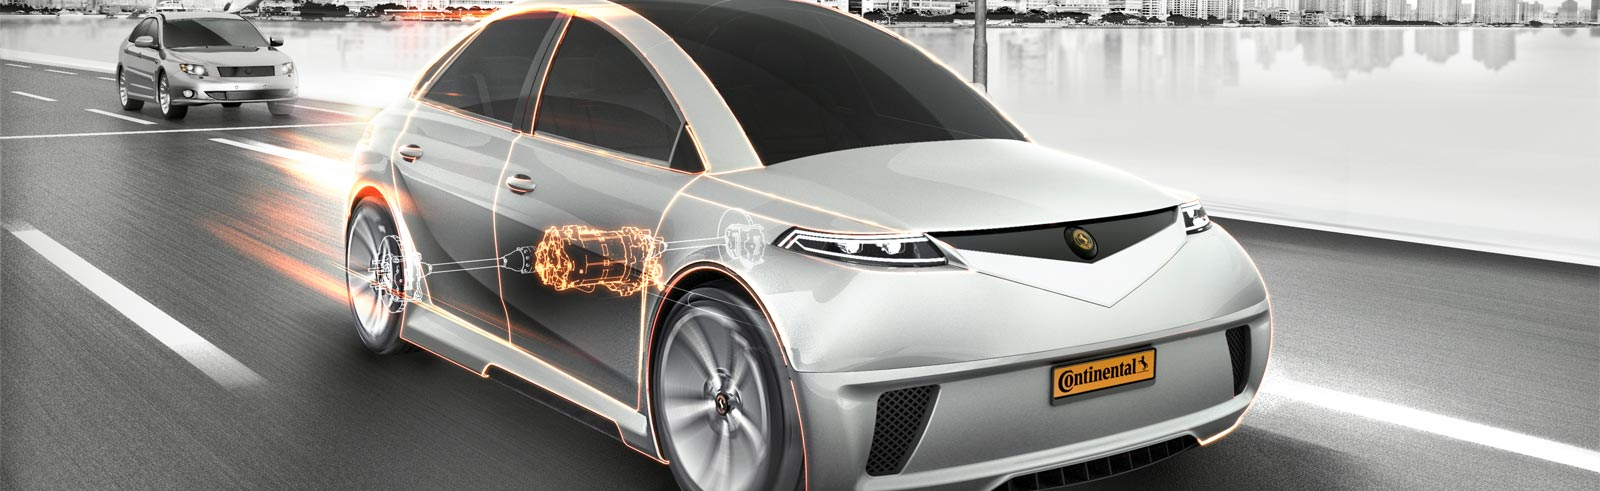 Continental to present the first fully integrated axle drive for EVs at the IAA 2019 in Frankfurt